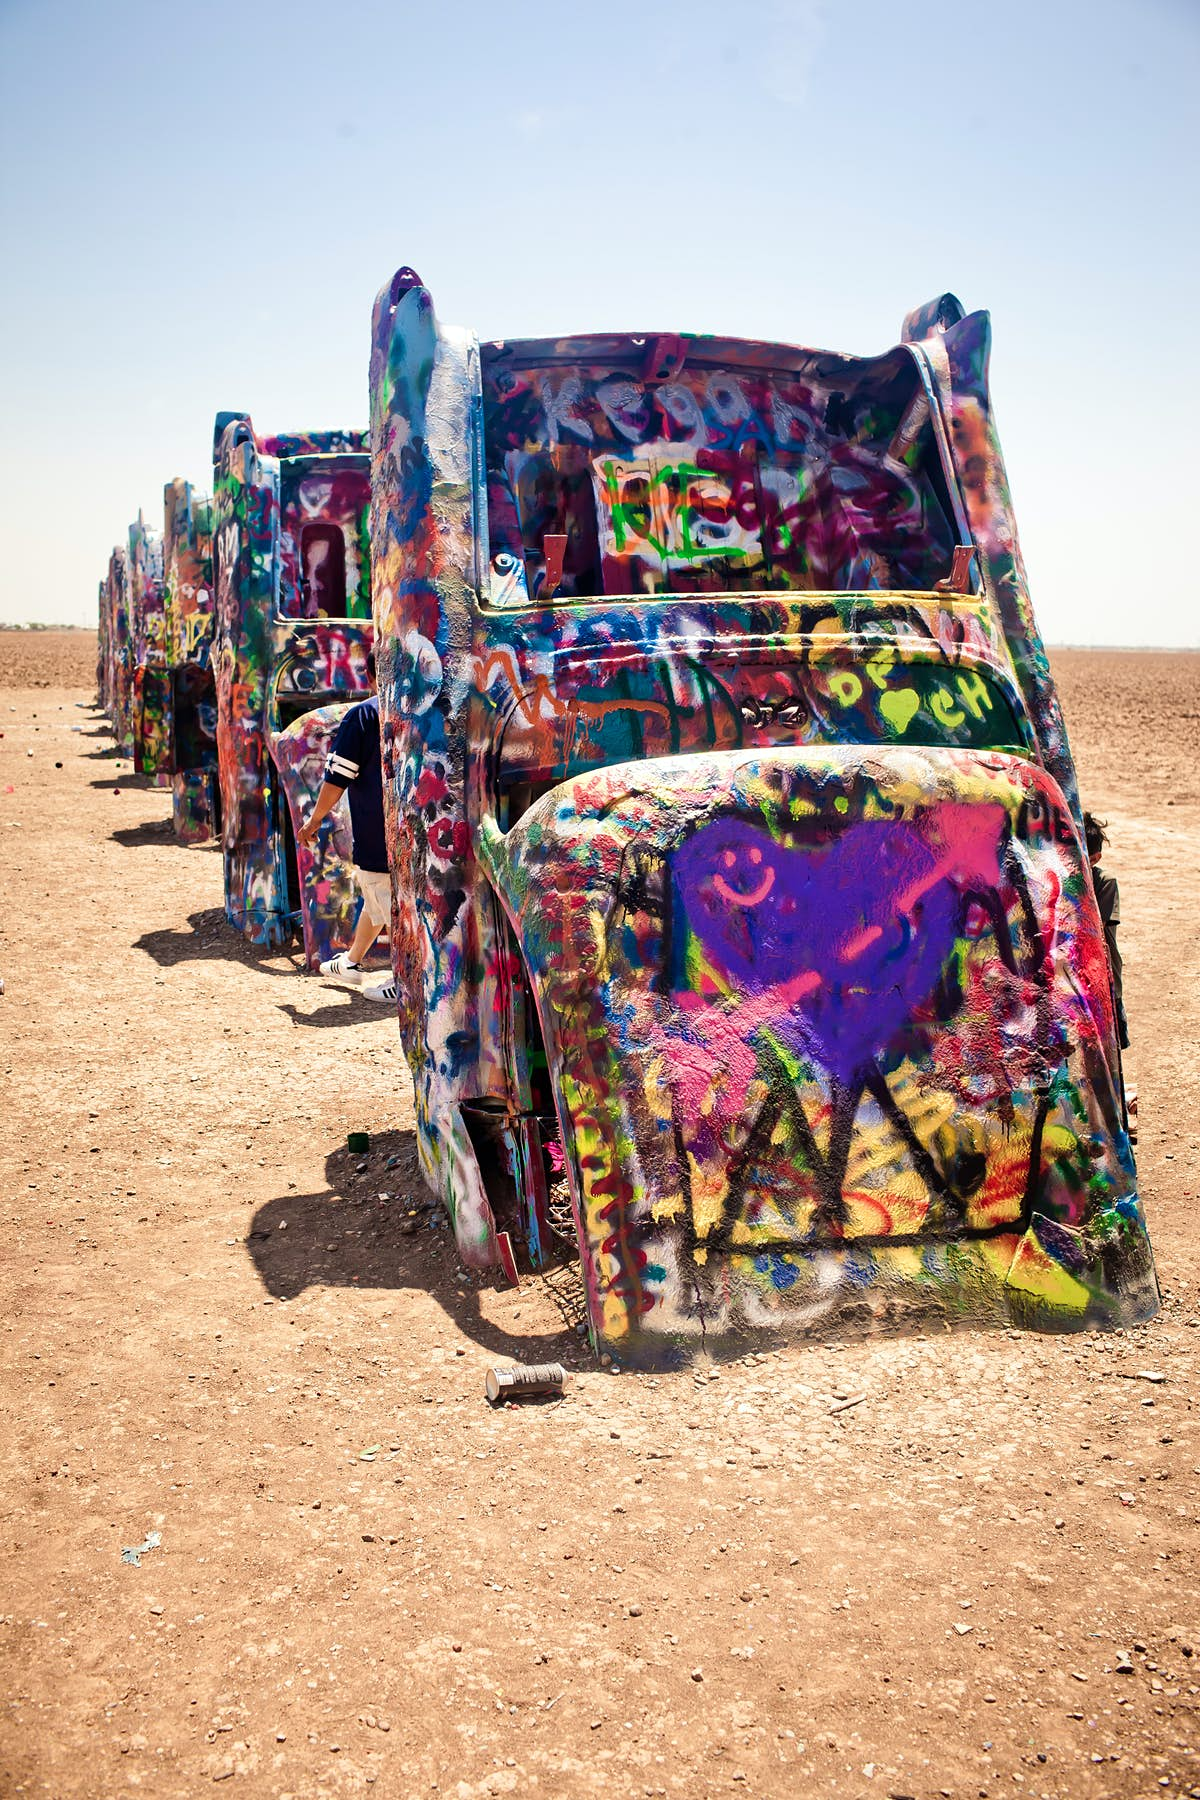 Top 10 weird and wonderful USA roadside attractions